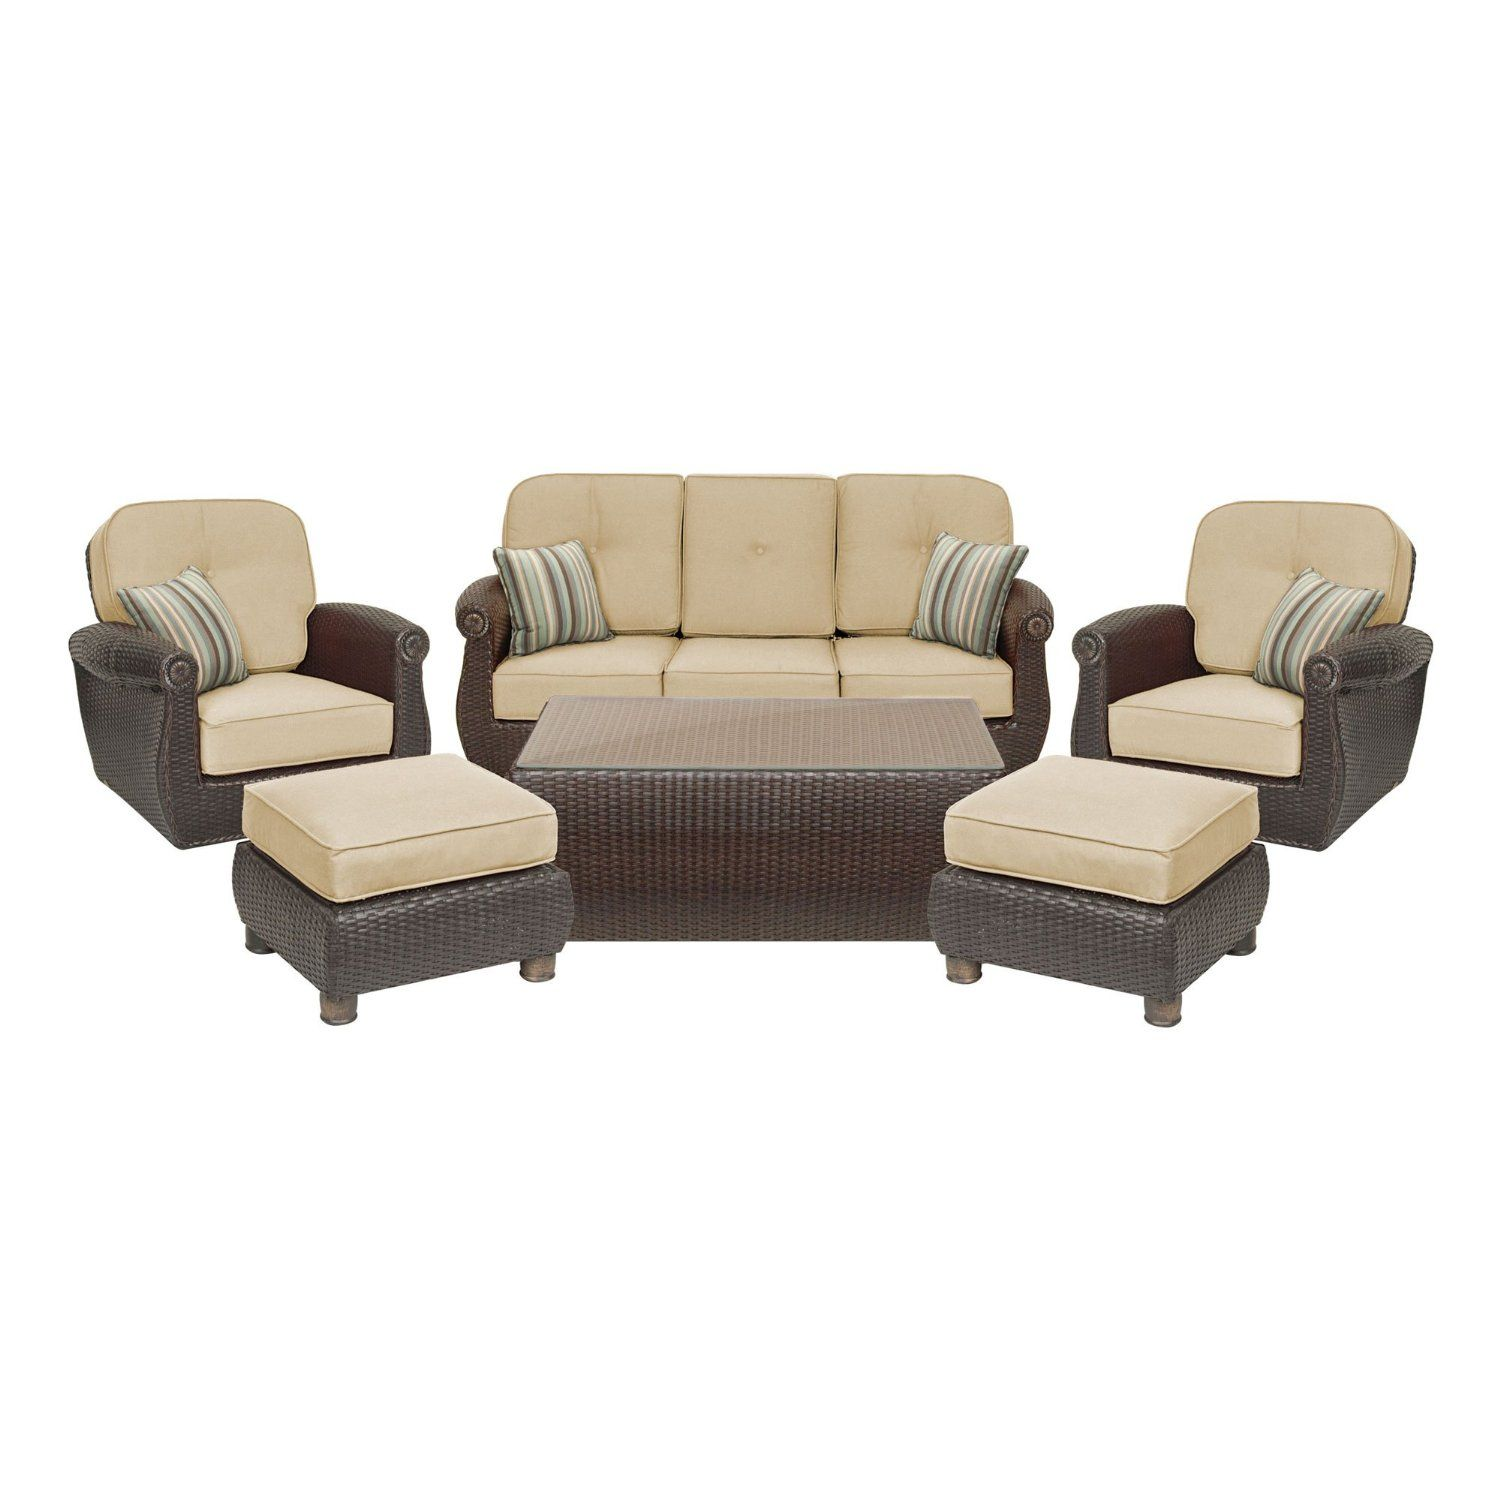 Amazon.com : Breckenridge 6 Piece Patio Furniture Seating Set: Two Swivel  Rockers,